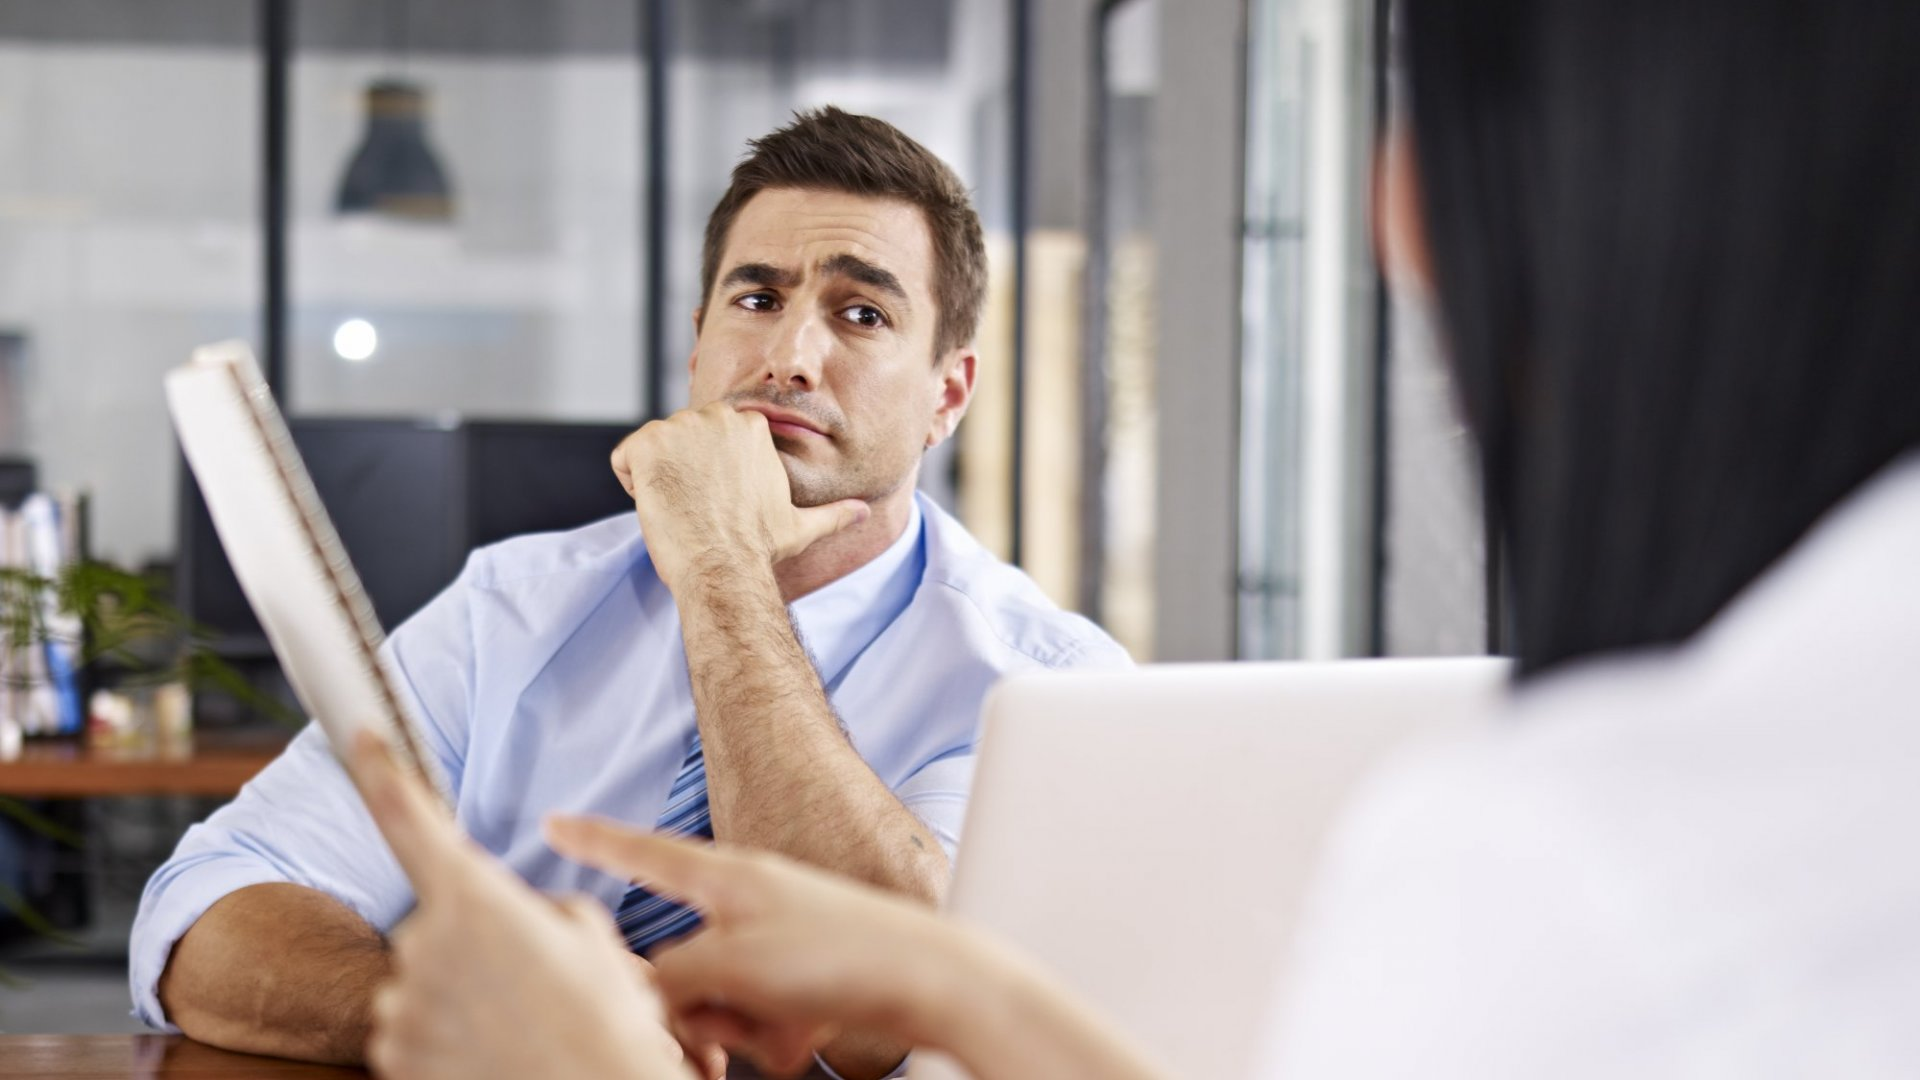 Should You Listen to Your Gut in a Job Interview?